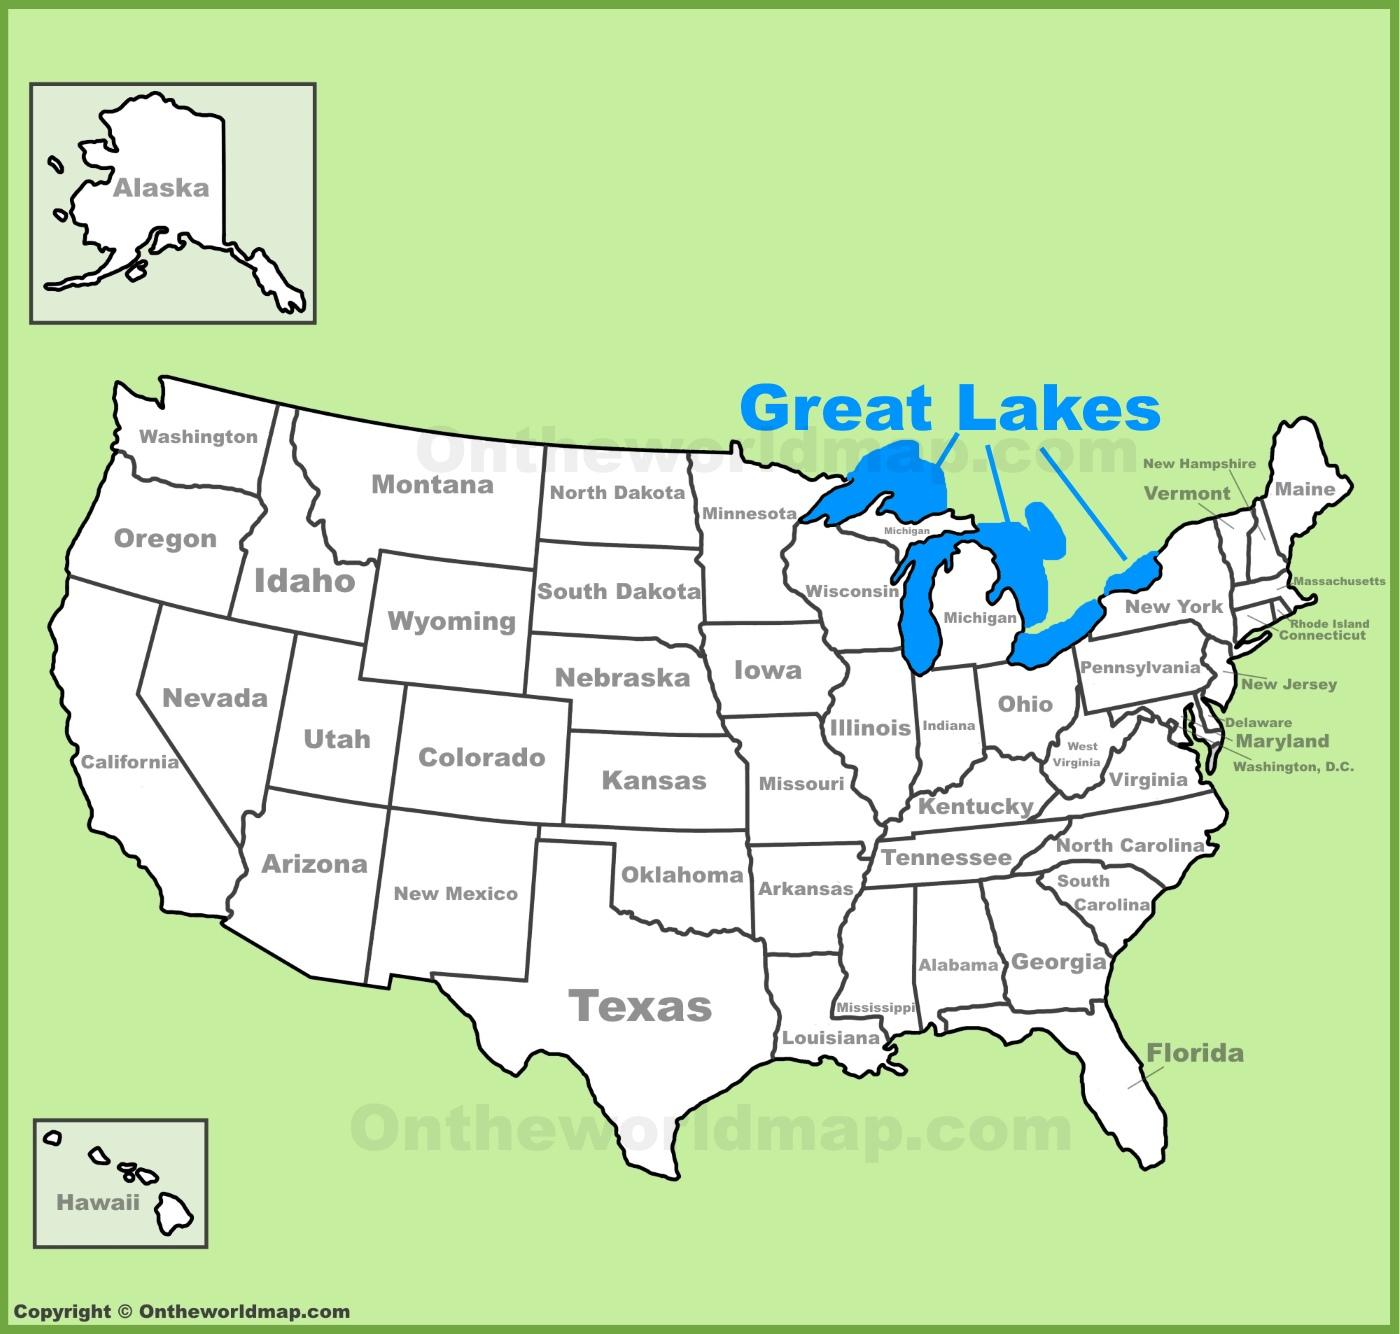 us map with great lakes Great Lakes Maps Maps Of Great Lakes us map with great lakes